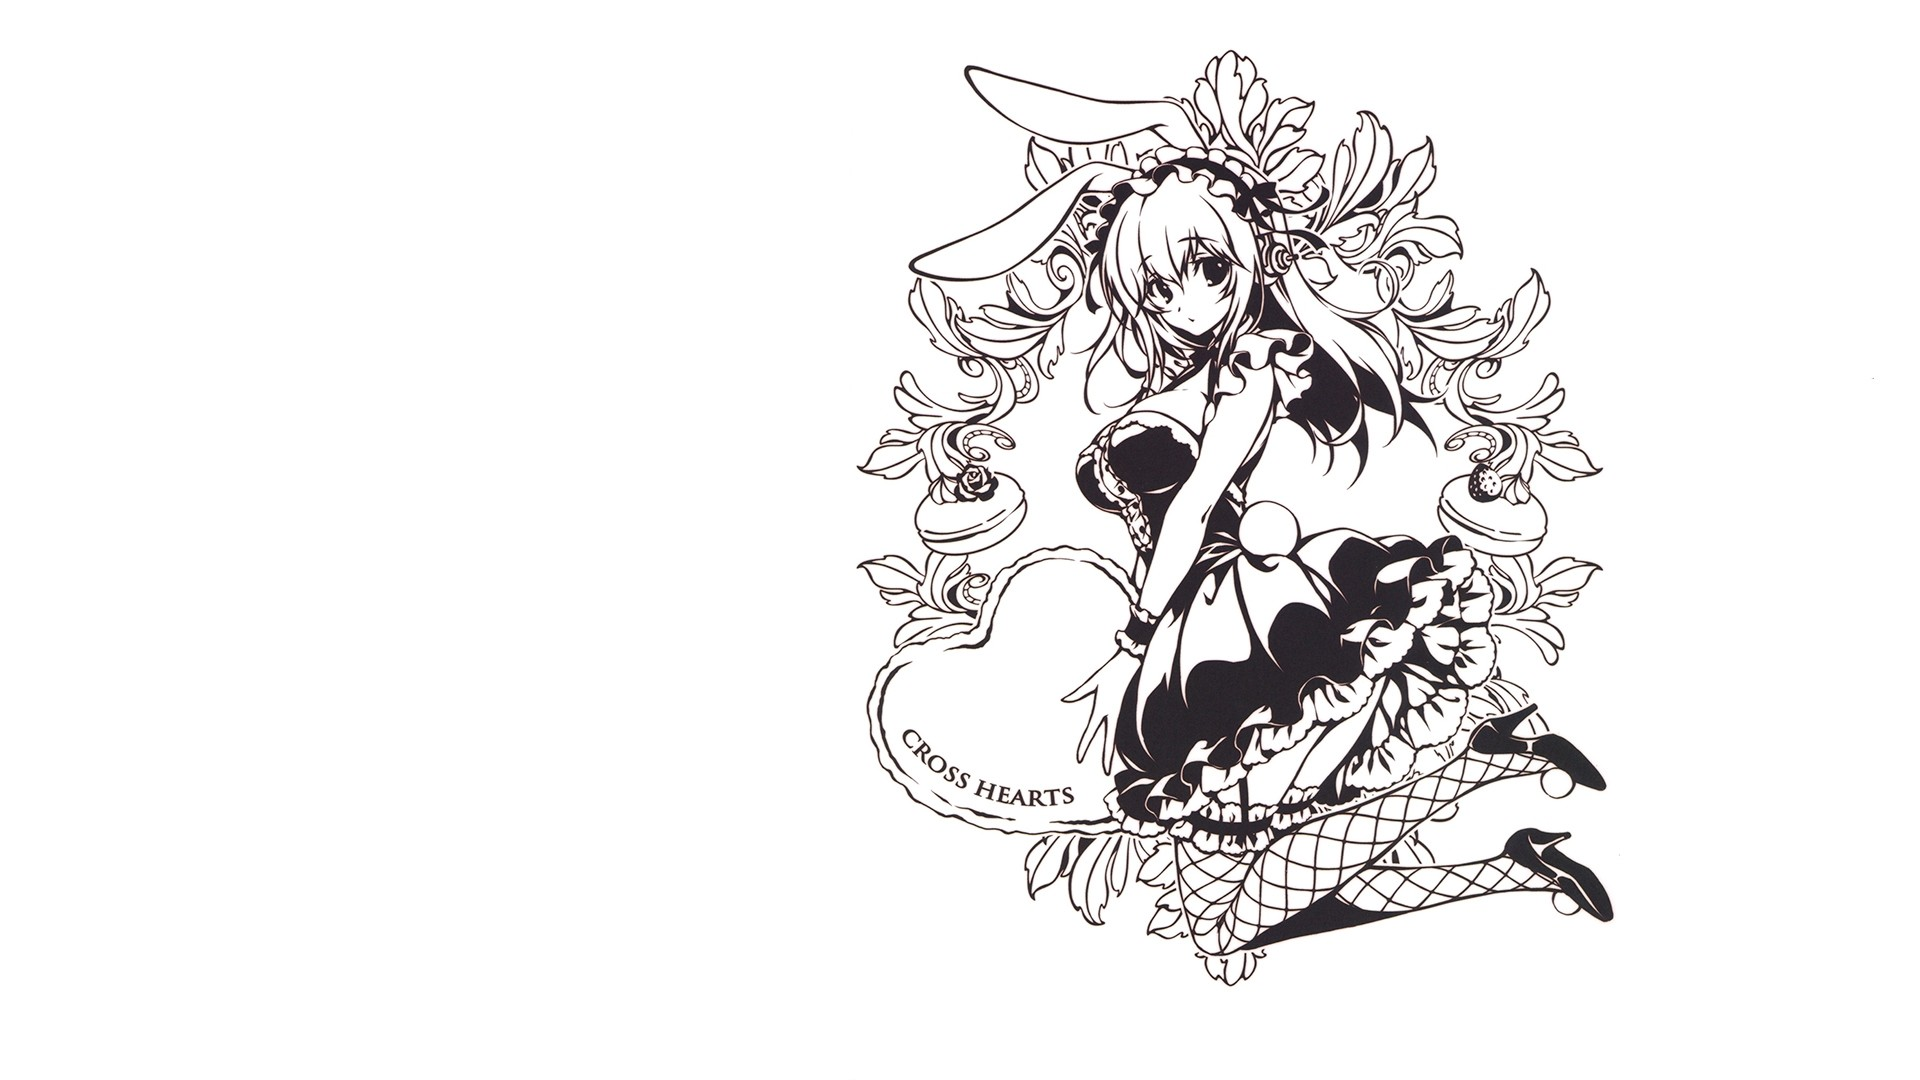 1920x1080 SoniAni: Super Sonico the Animation, Black And White, Maid, Bunny Ears,